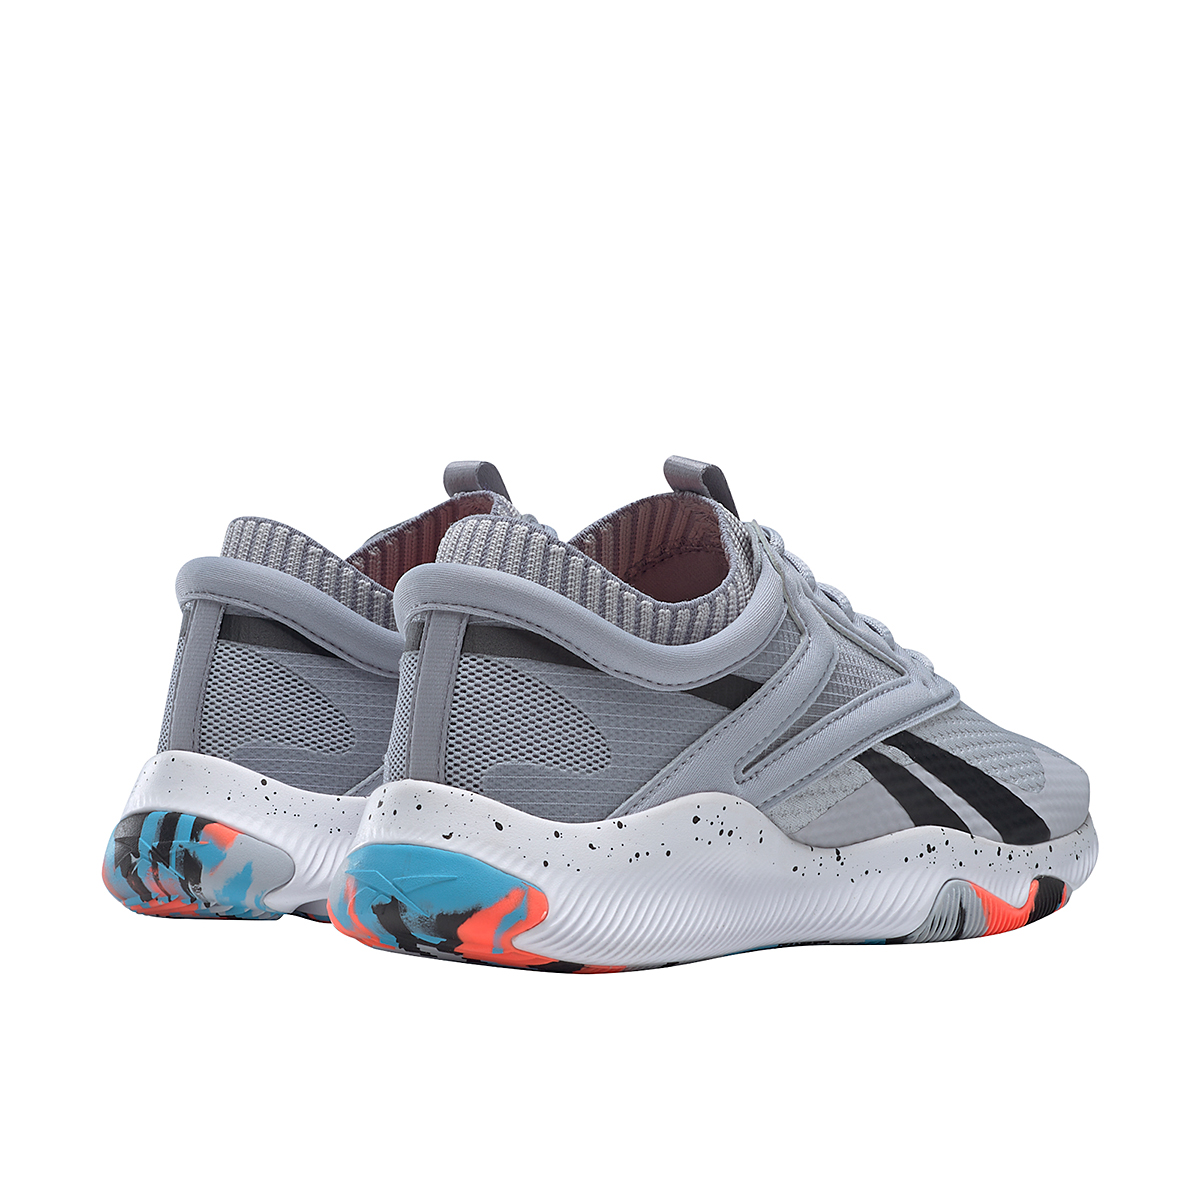 Women's Reebok HIIT TR Training Shoes - Color: Cold Grey 2/Orange Flare /Radiant Aqua - Size: 5 - Width: Regular, Cold Grey 2/Orange Flare /Radiant Aqua, large, image 3